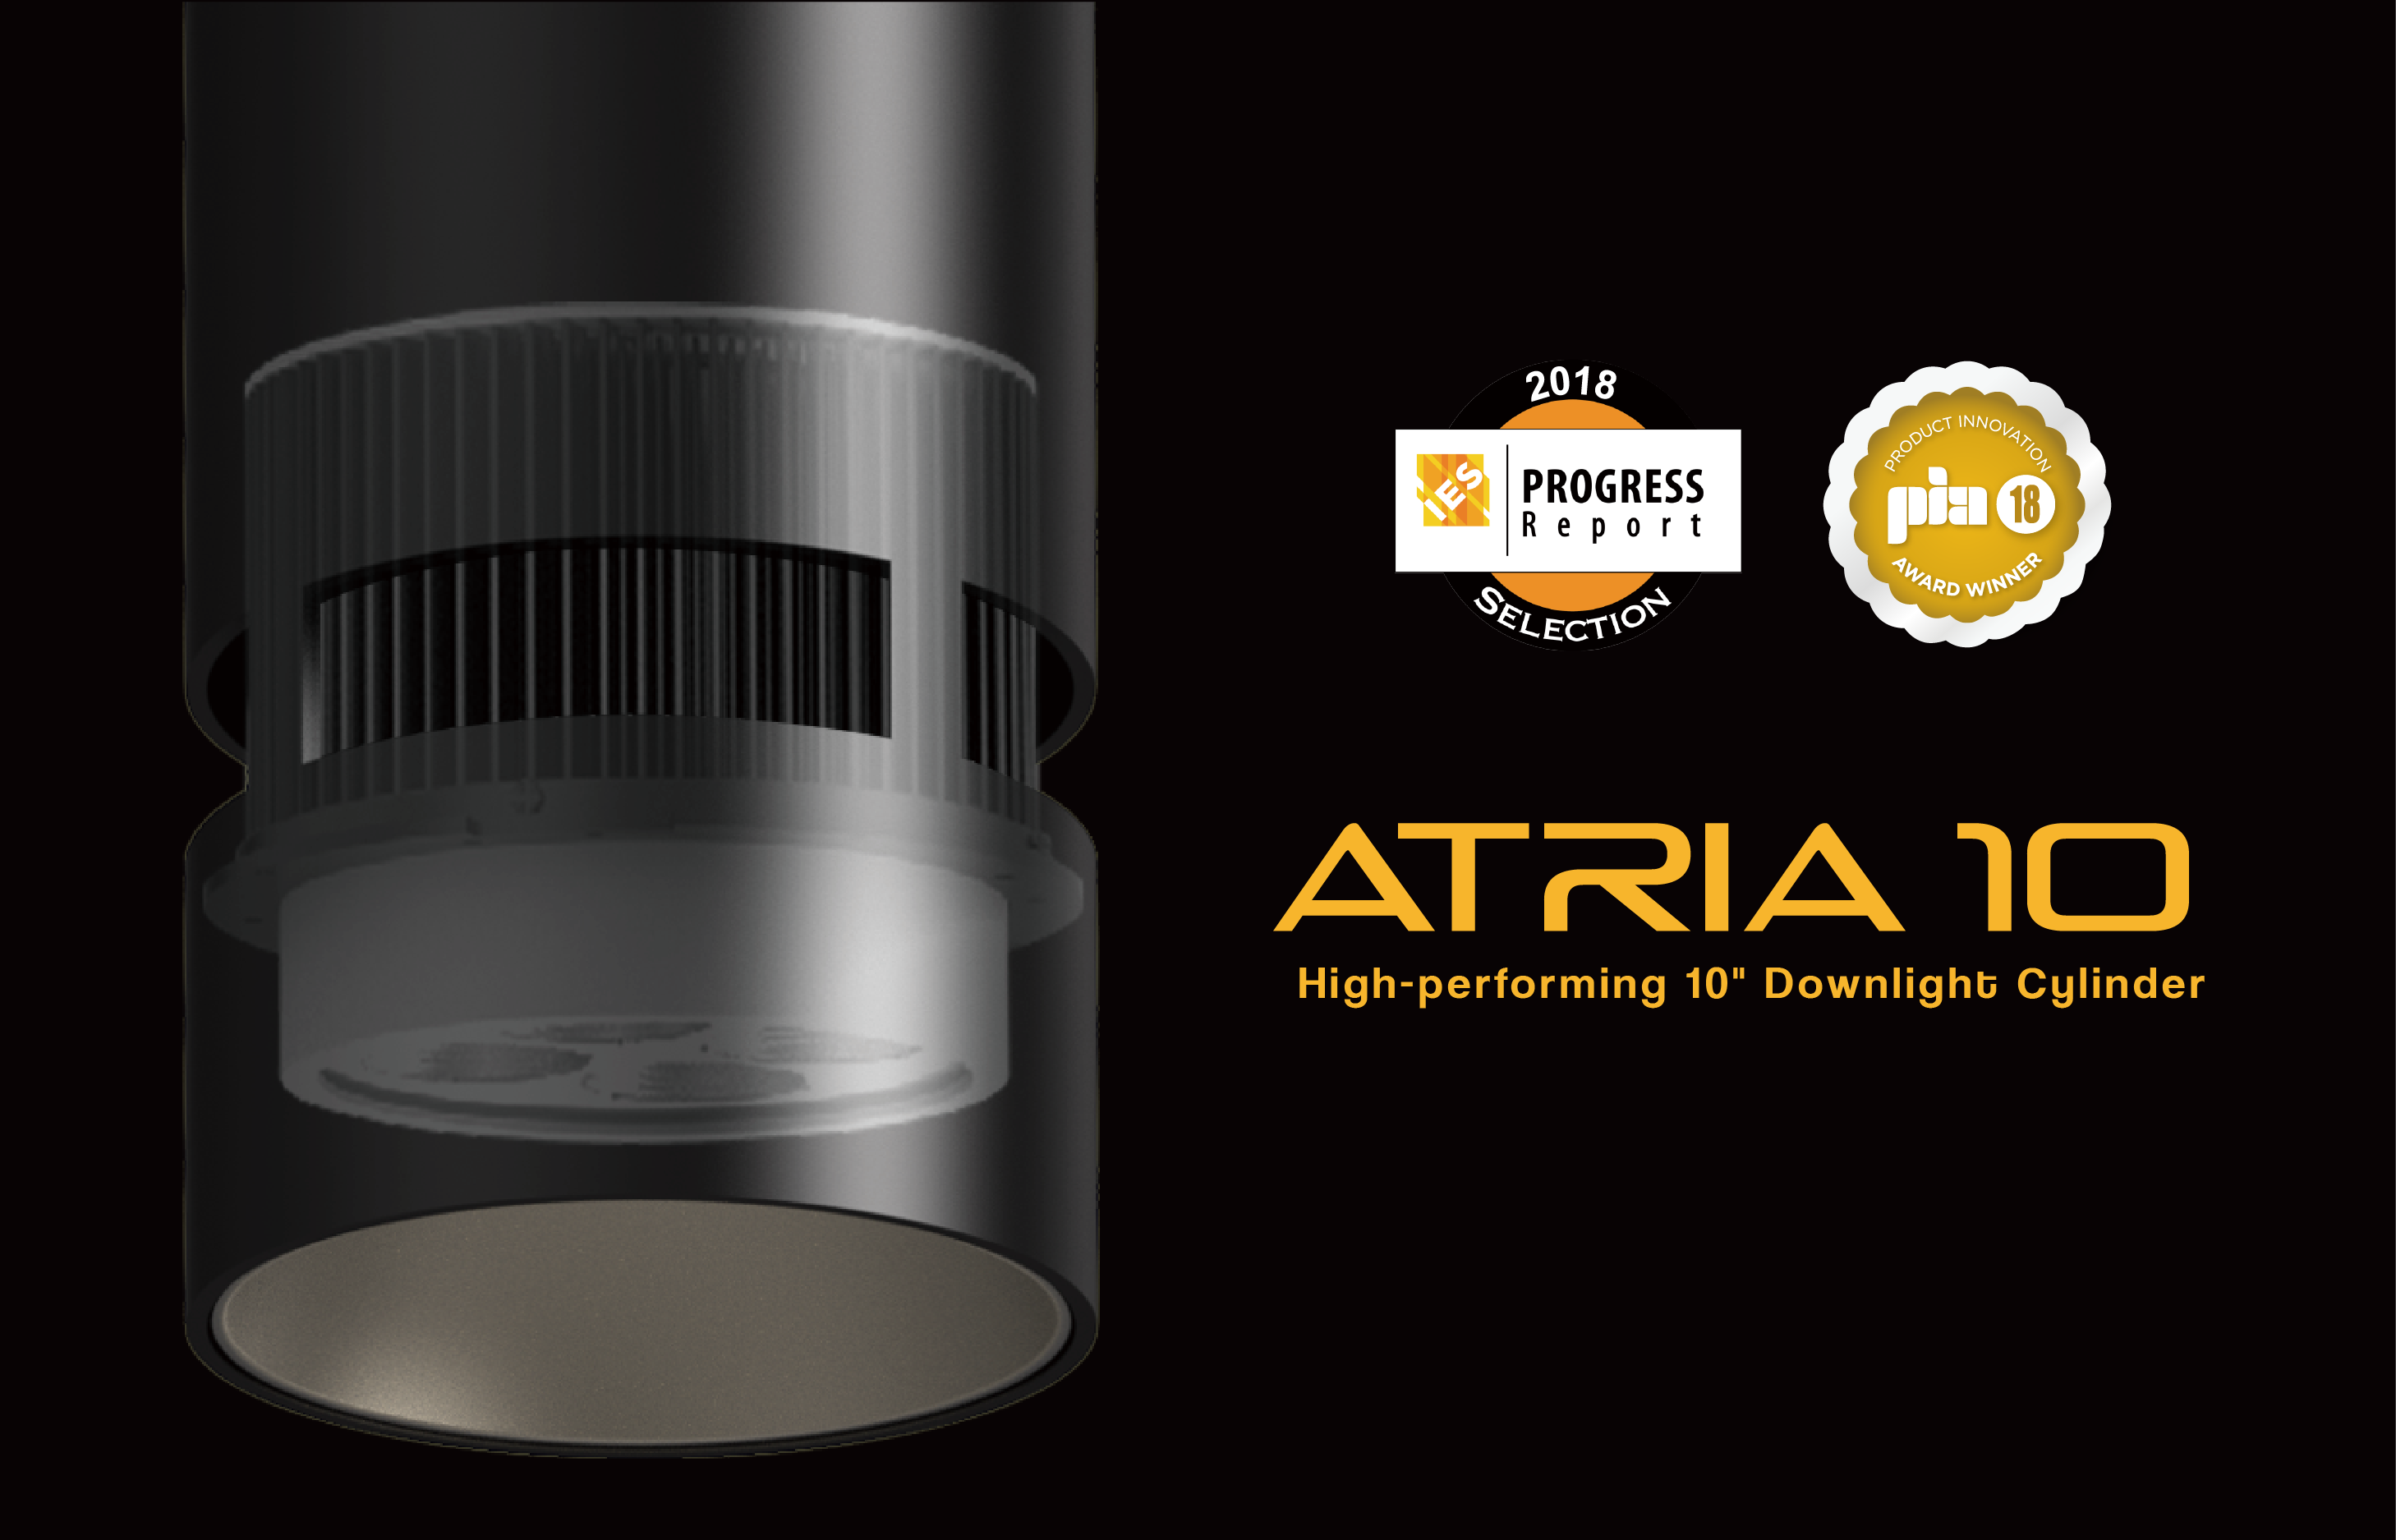 Atria 10 IES Progress Report 2018 Winner